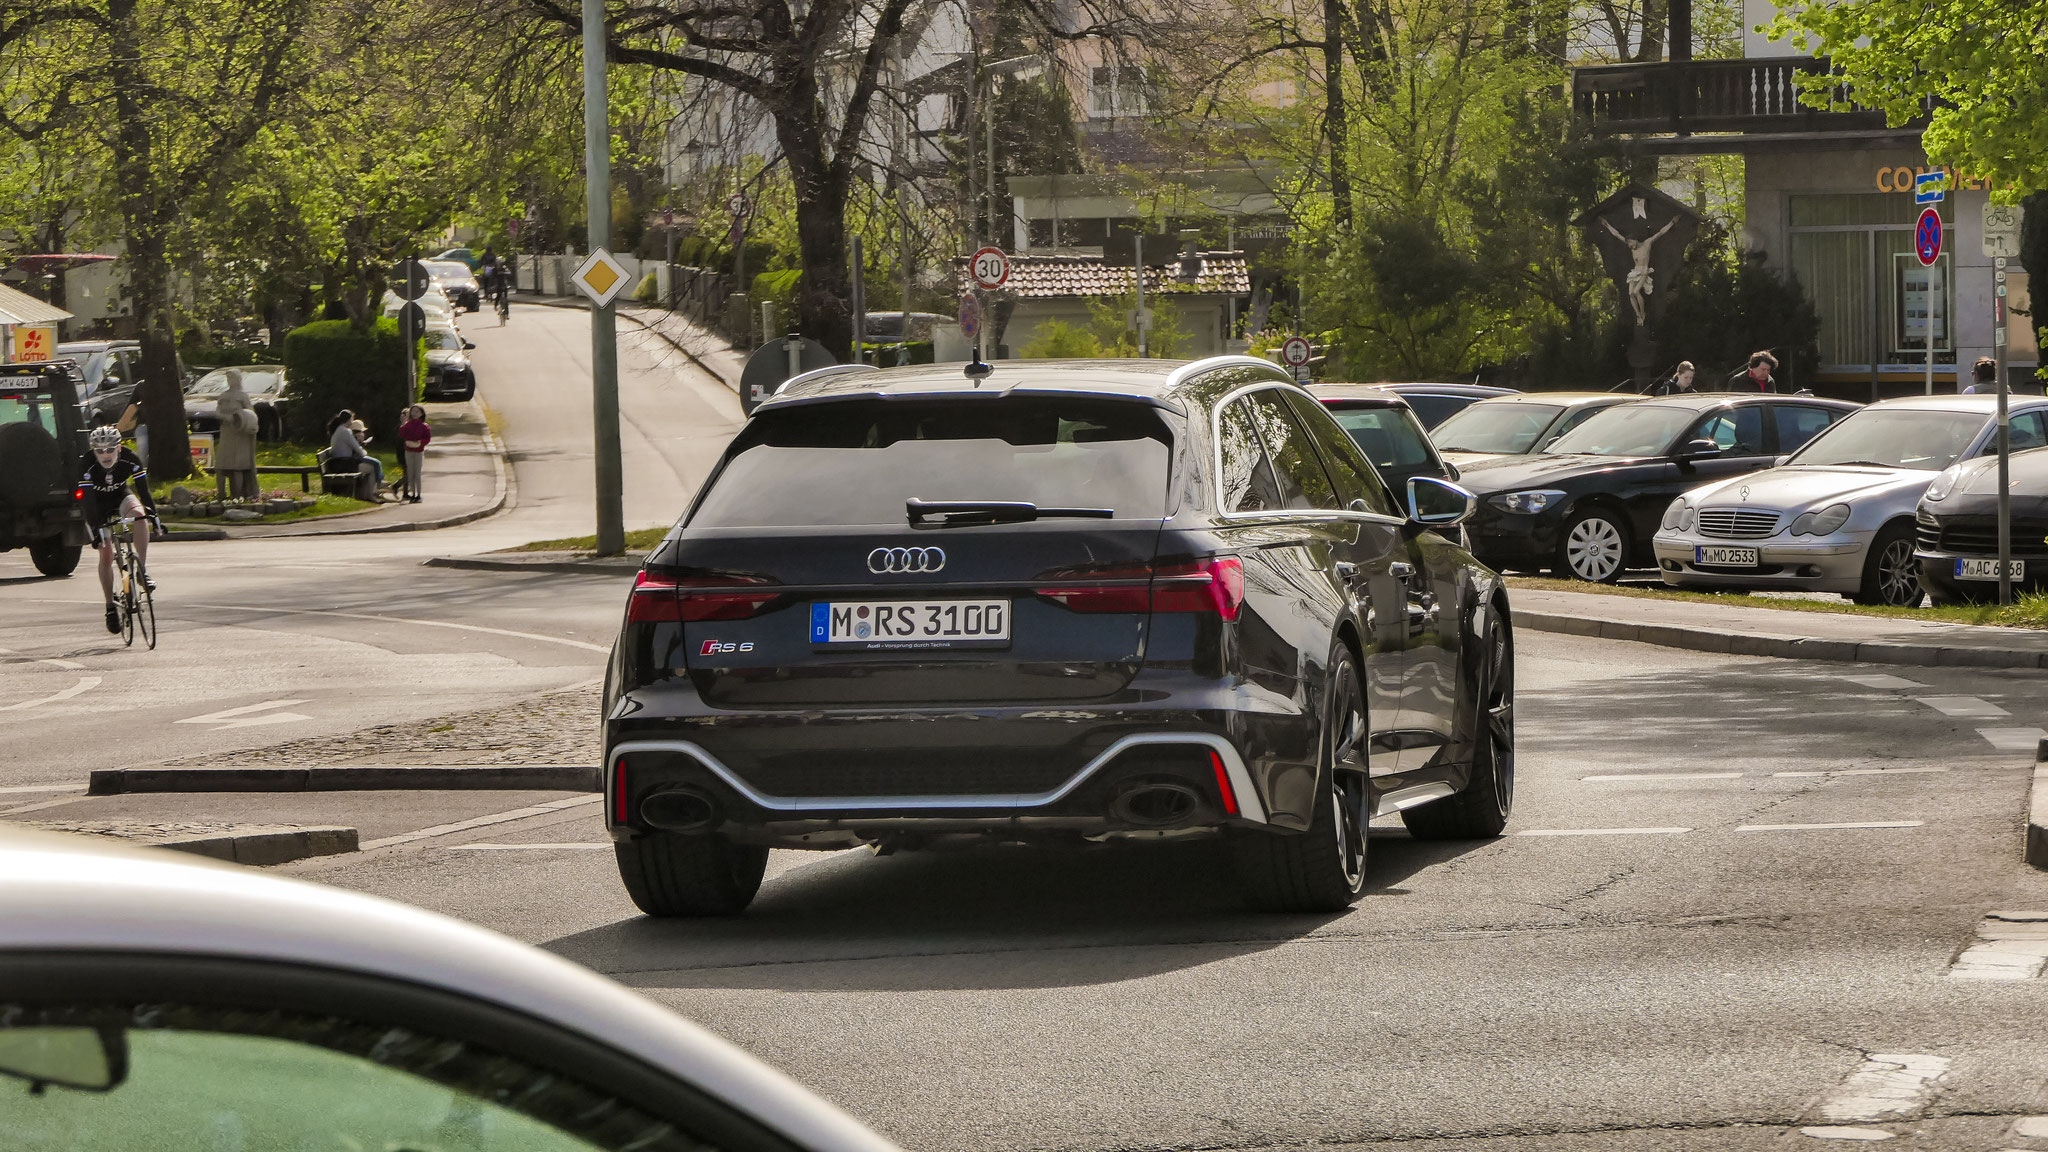 Audi RS6 - M-RS-3100